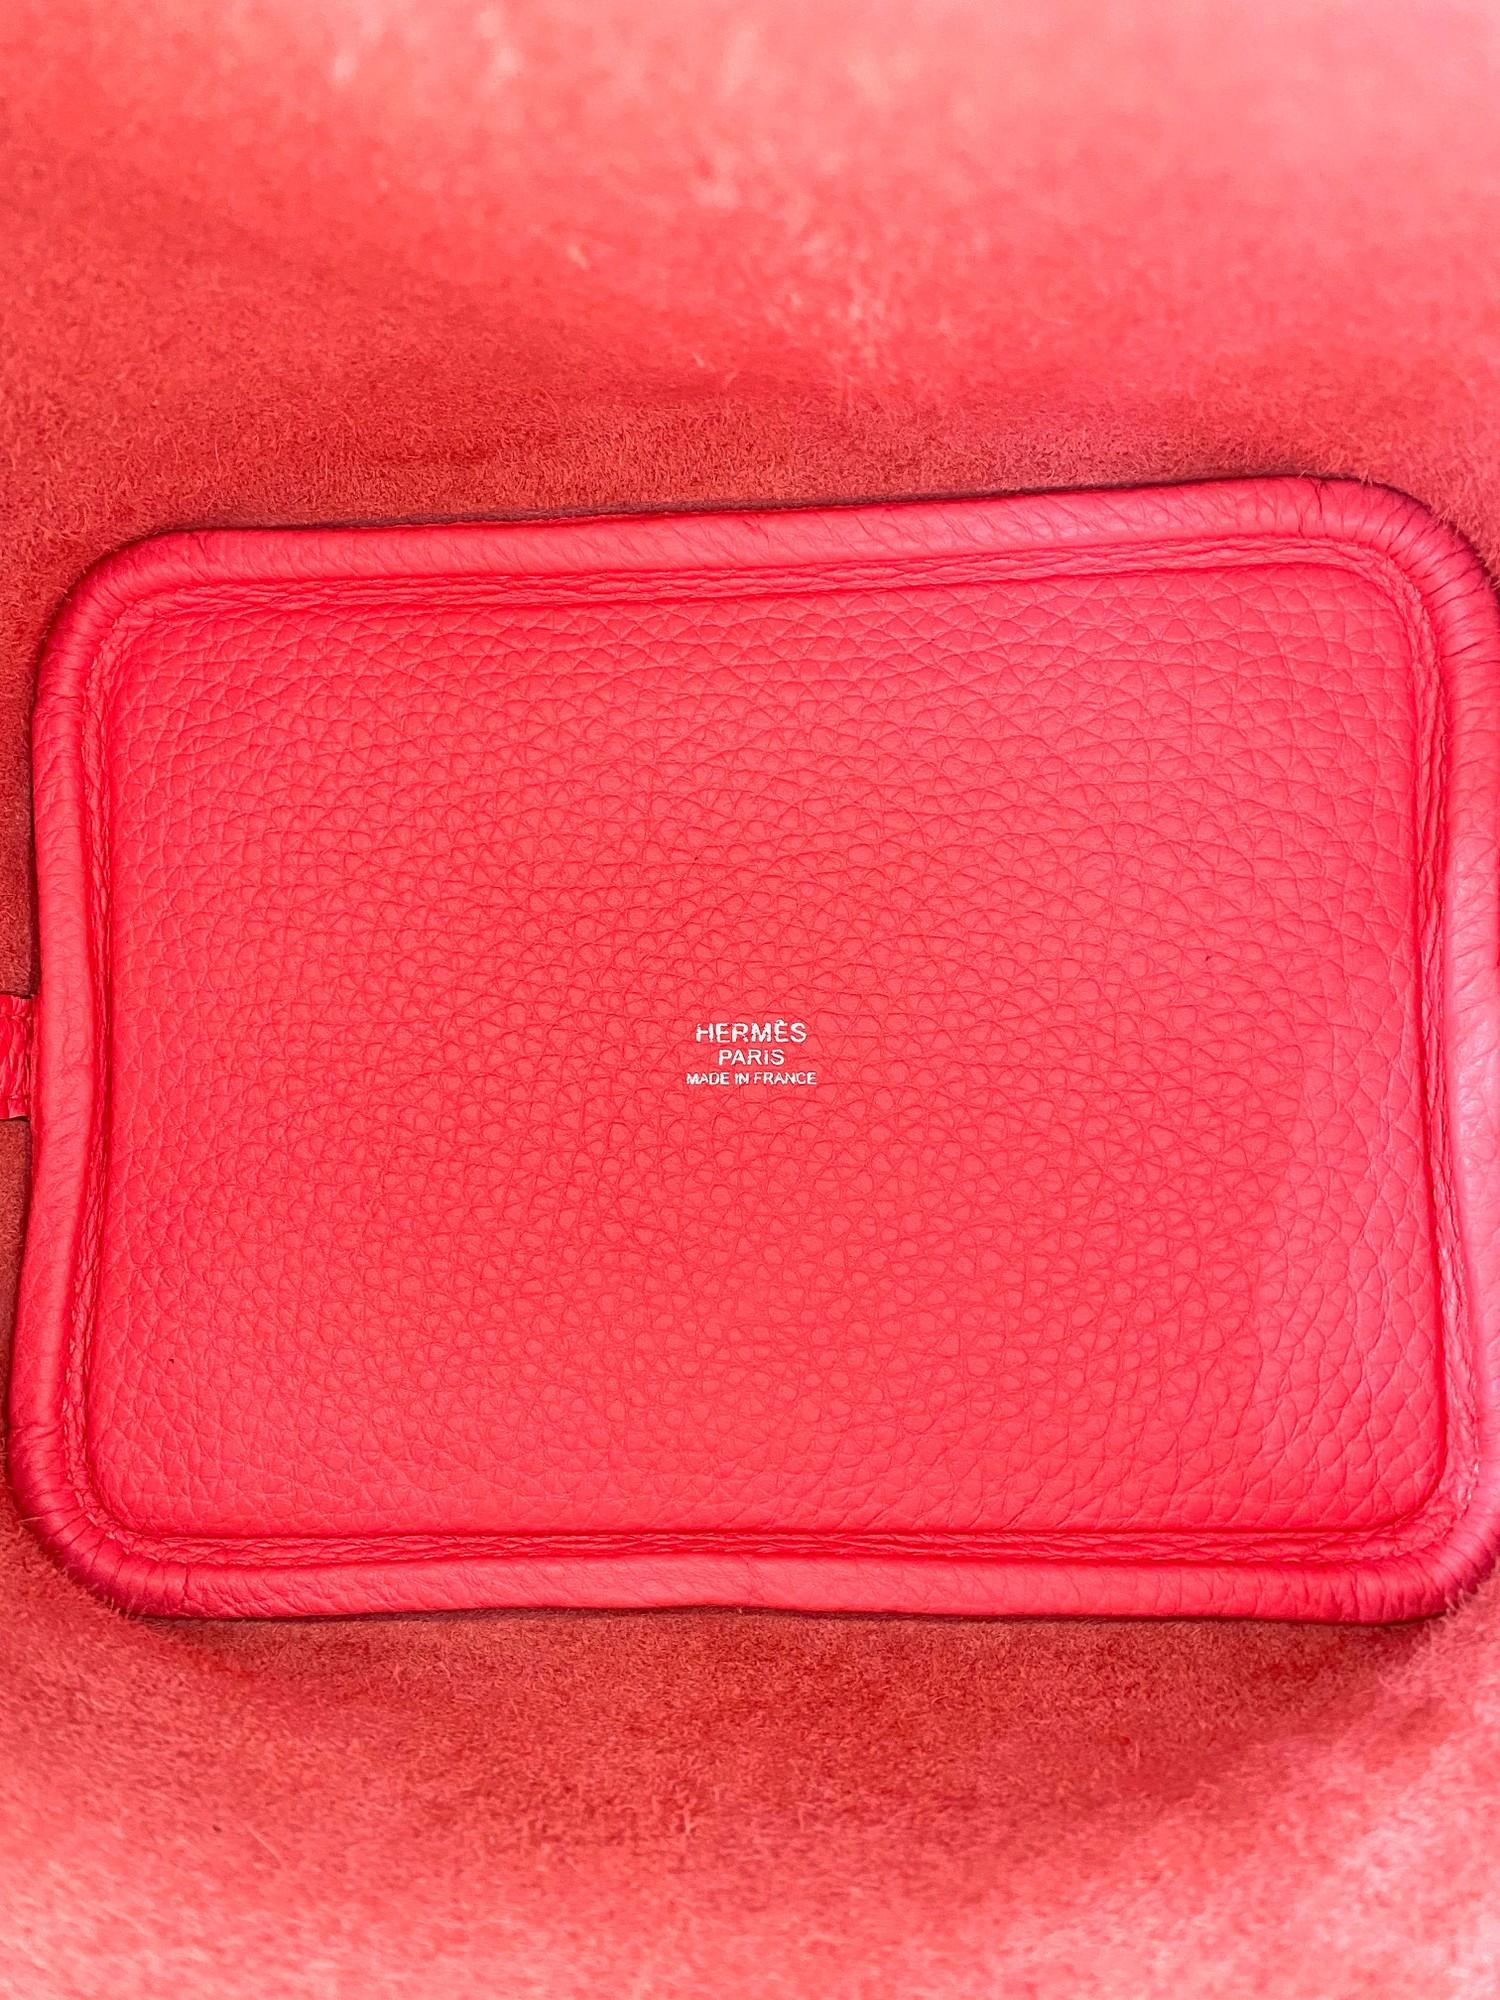 A Rose Azalee Hermes Picotin 18cm in clemence leather with palladium hardware. Includes Box, Dustbag - Image 3 of 5